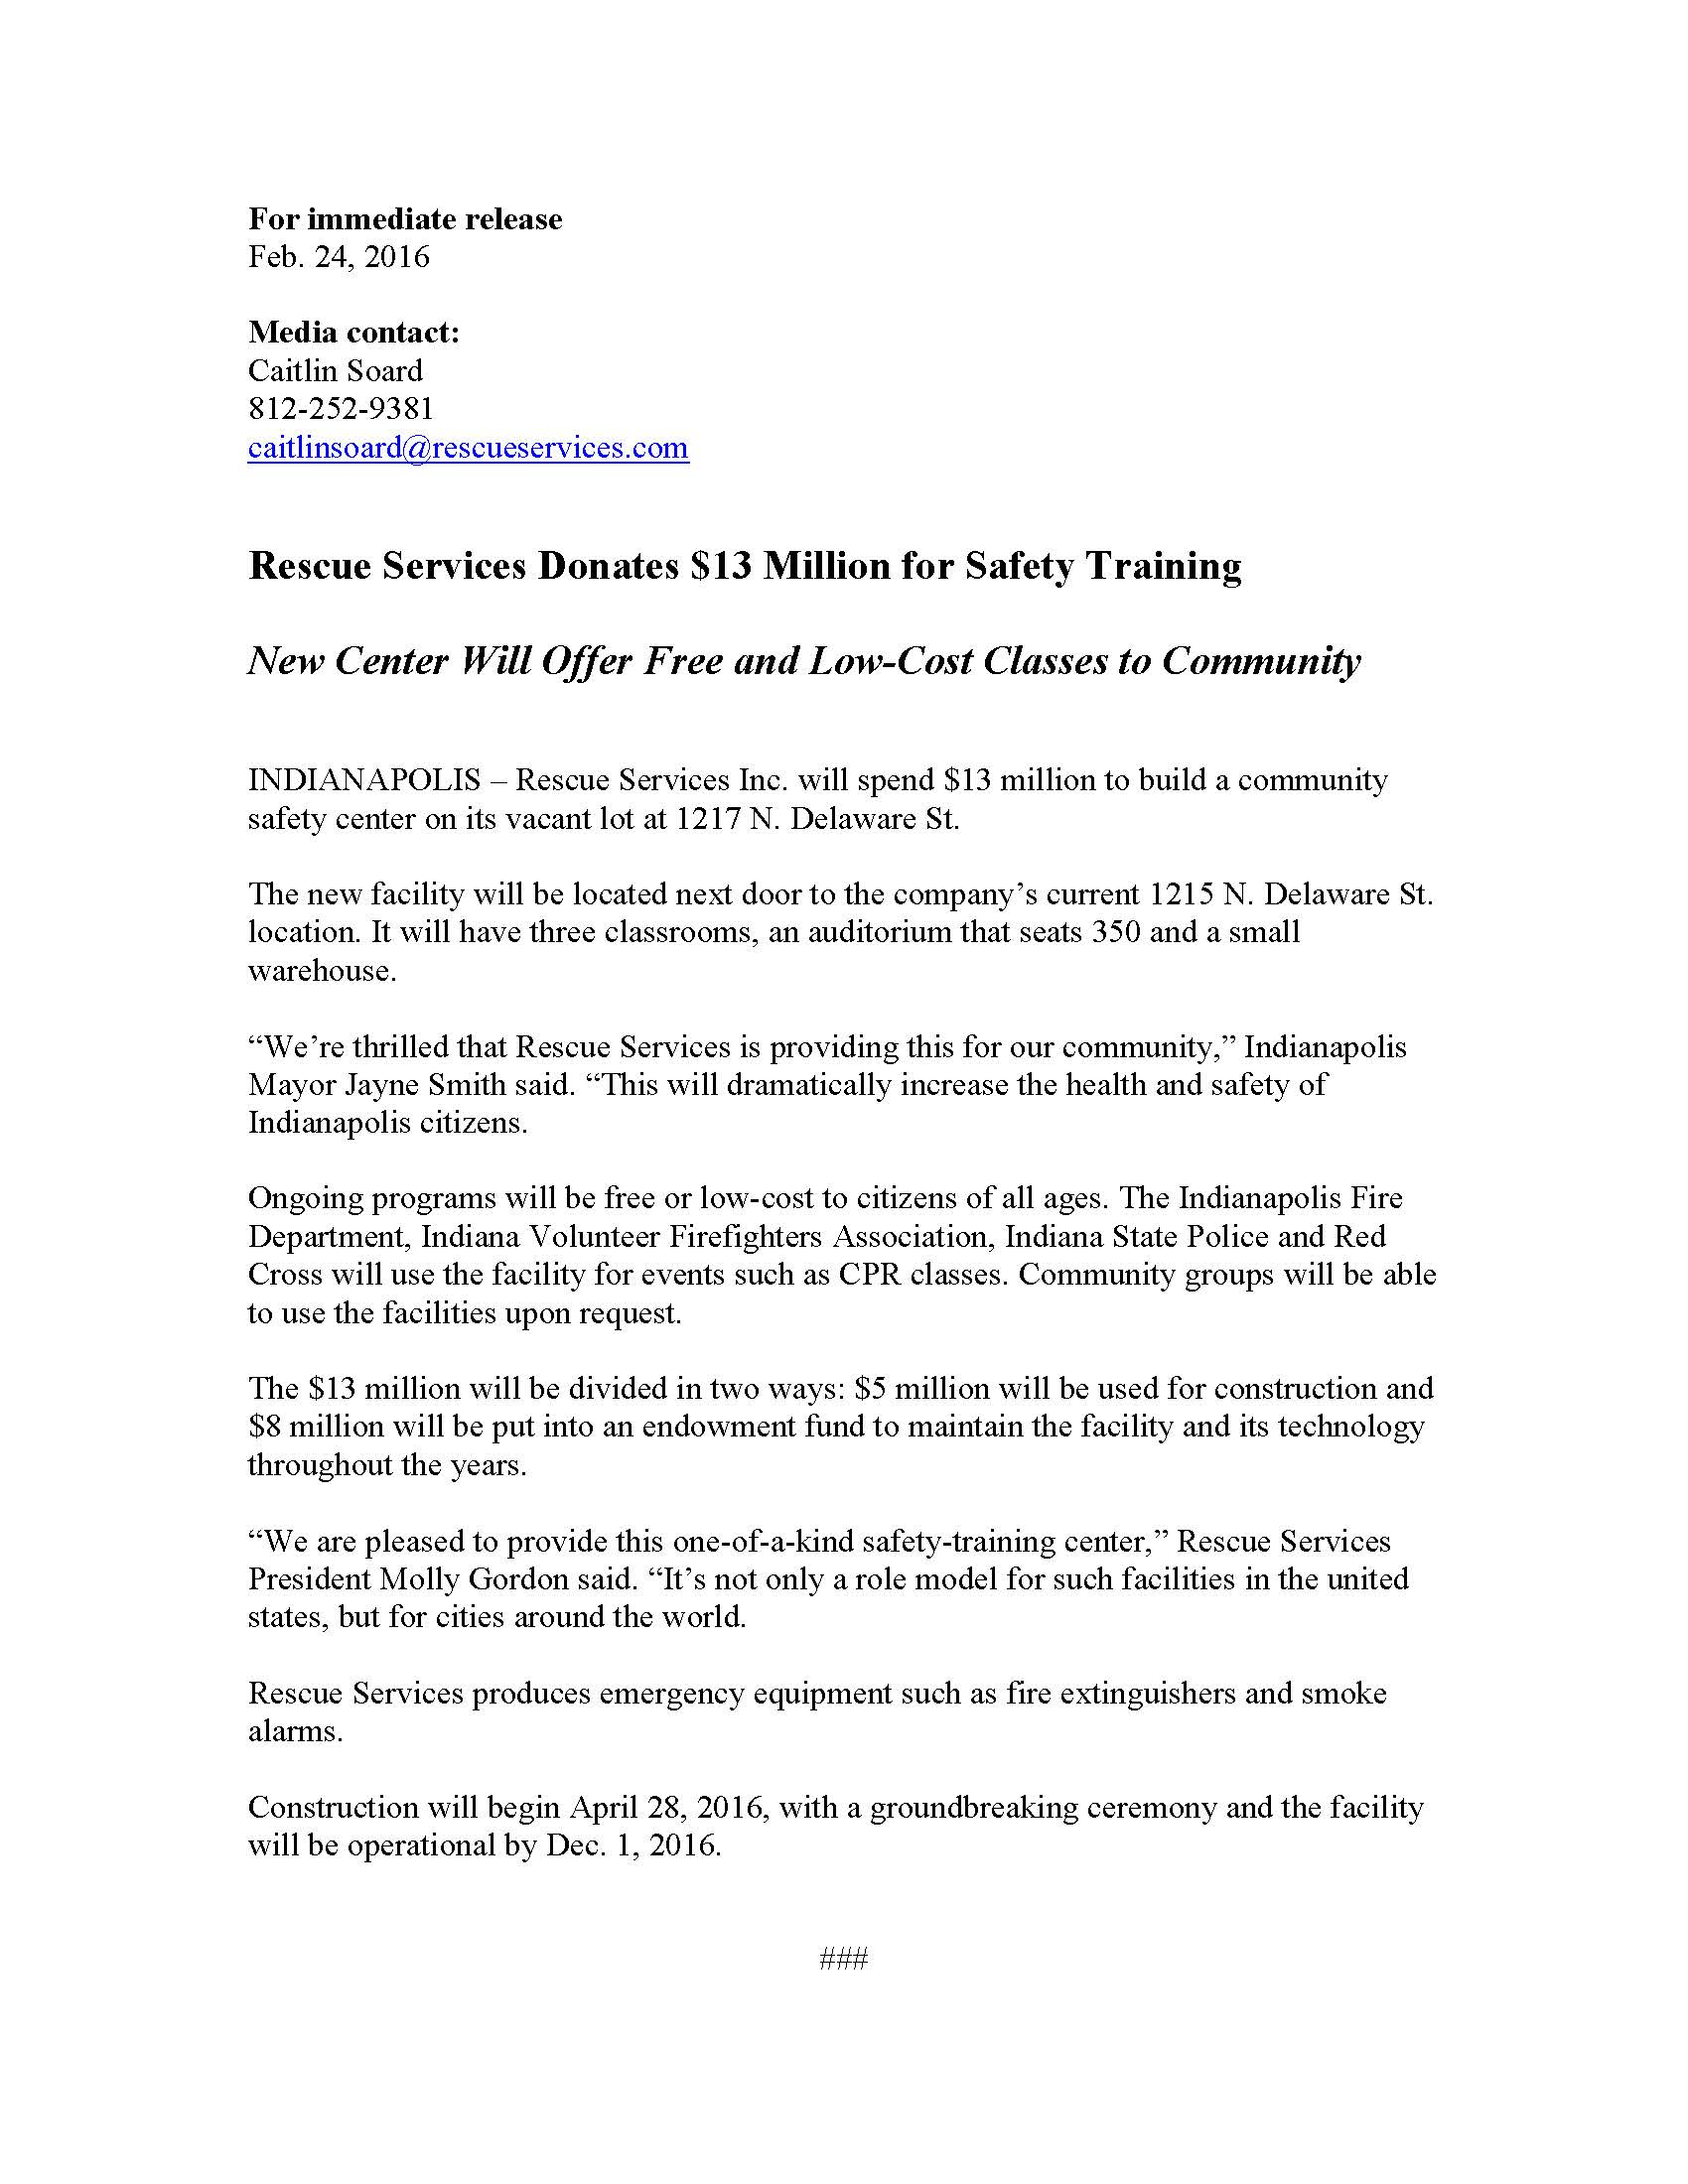 Rescue Services News Release.jpg